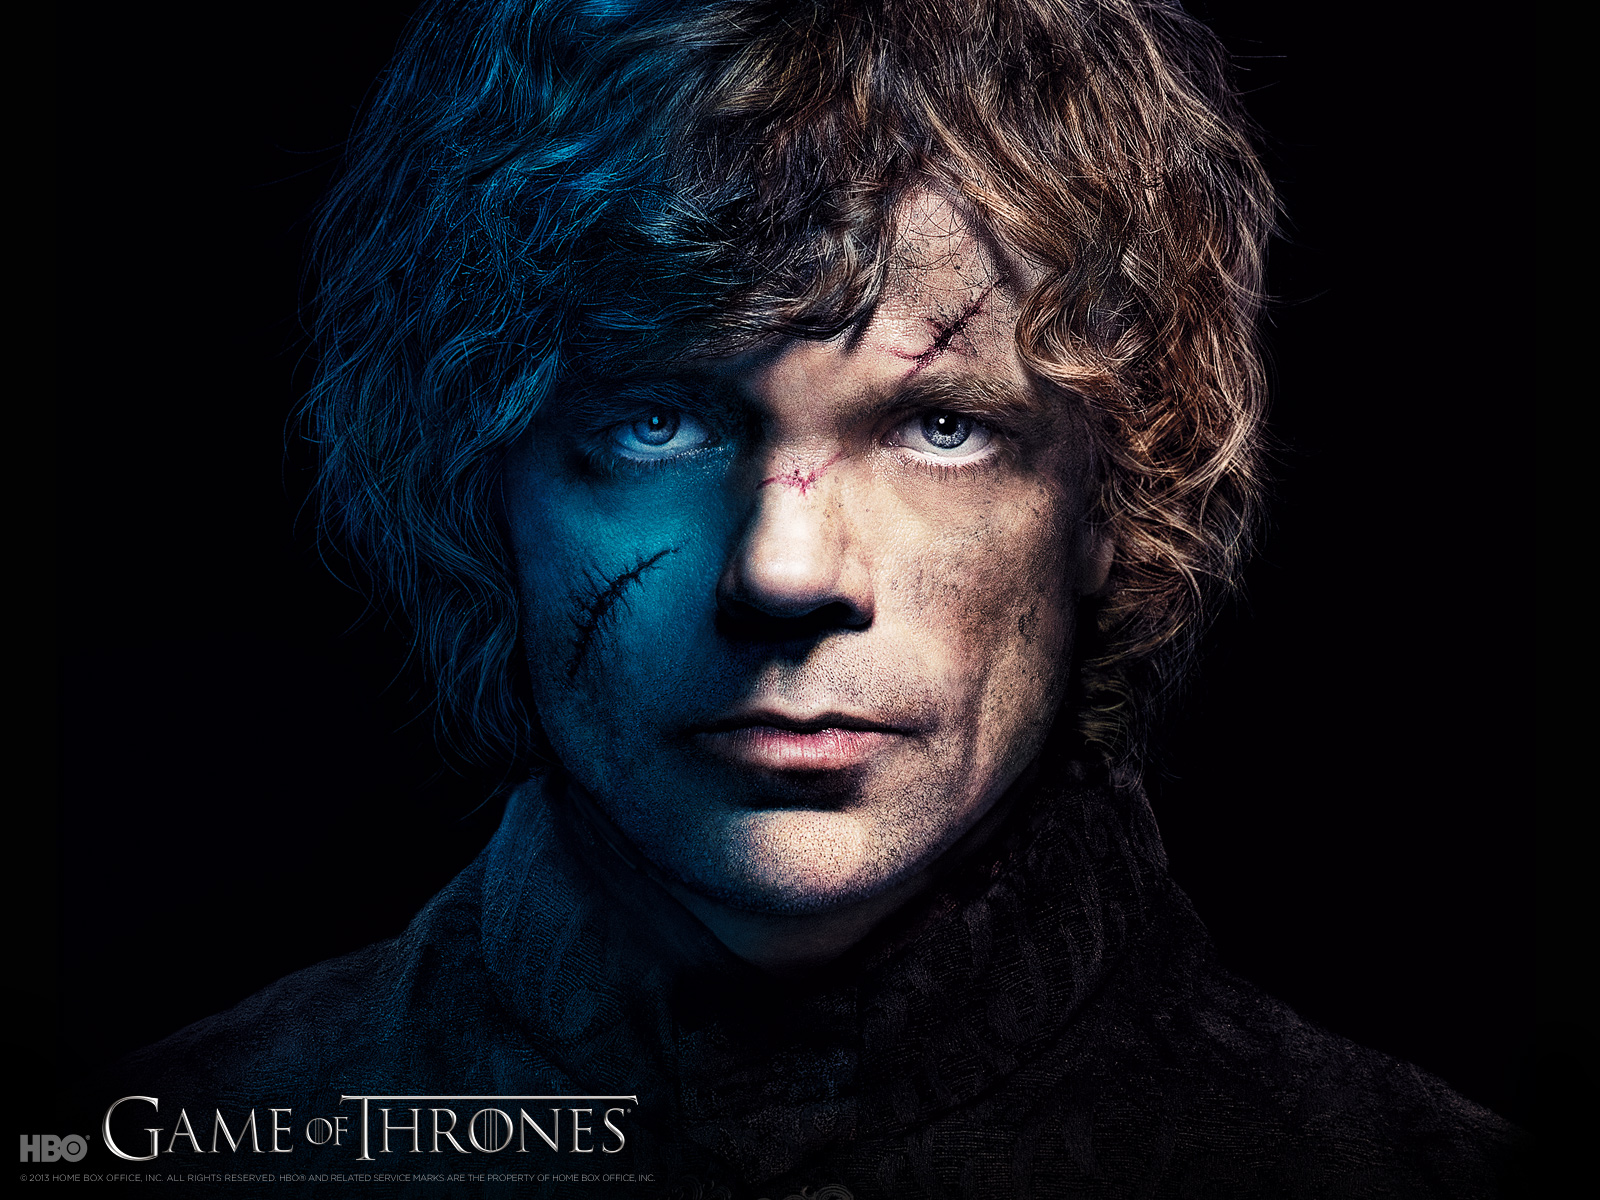 Tyrion-Lannister-tyrion-lannister-33779434-1600-1200